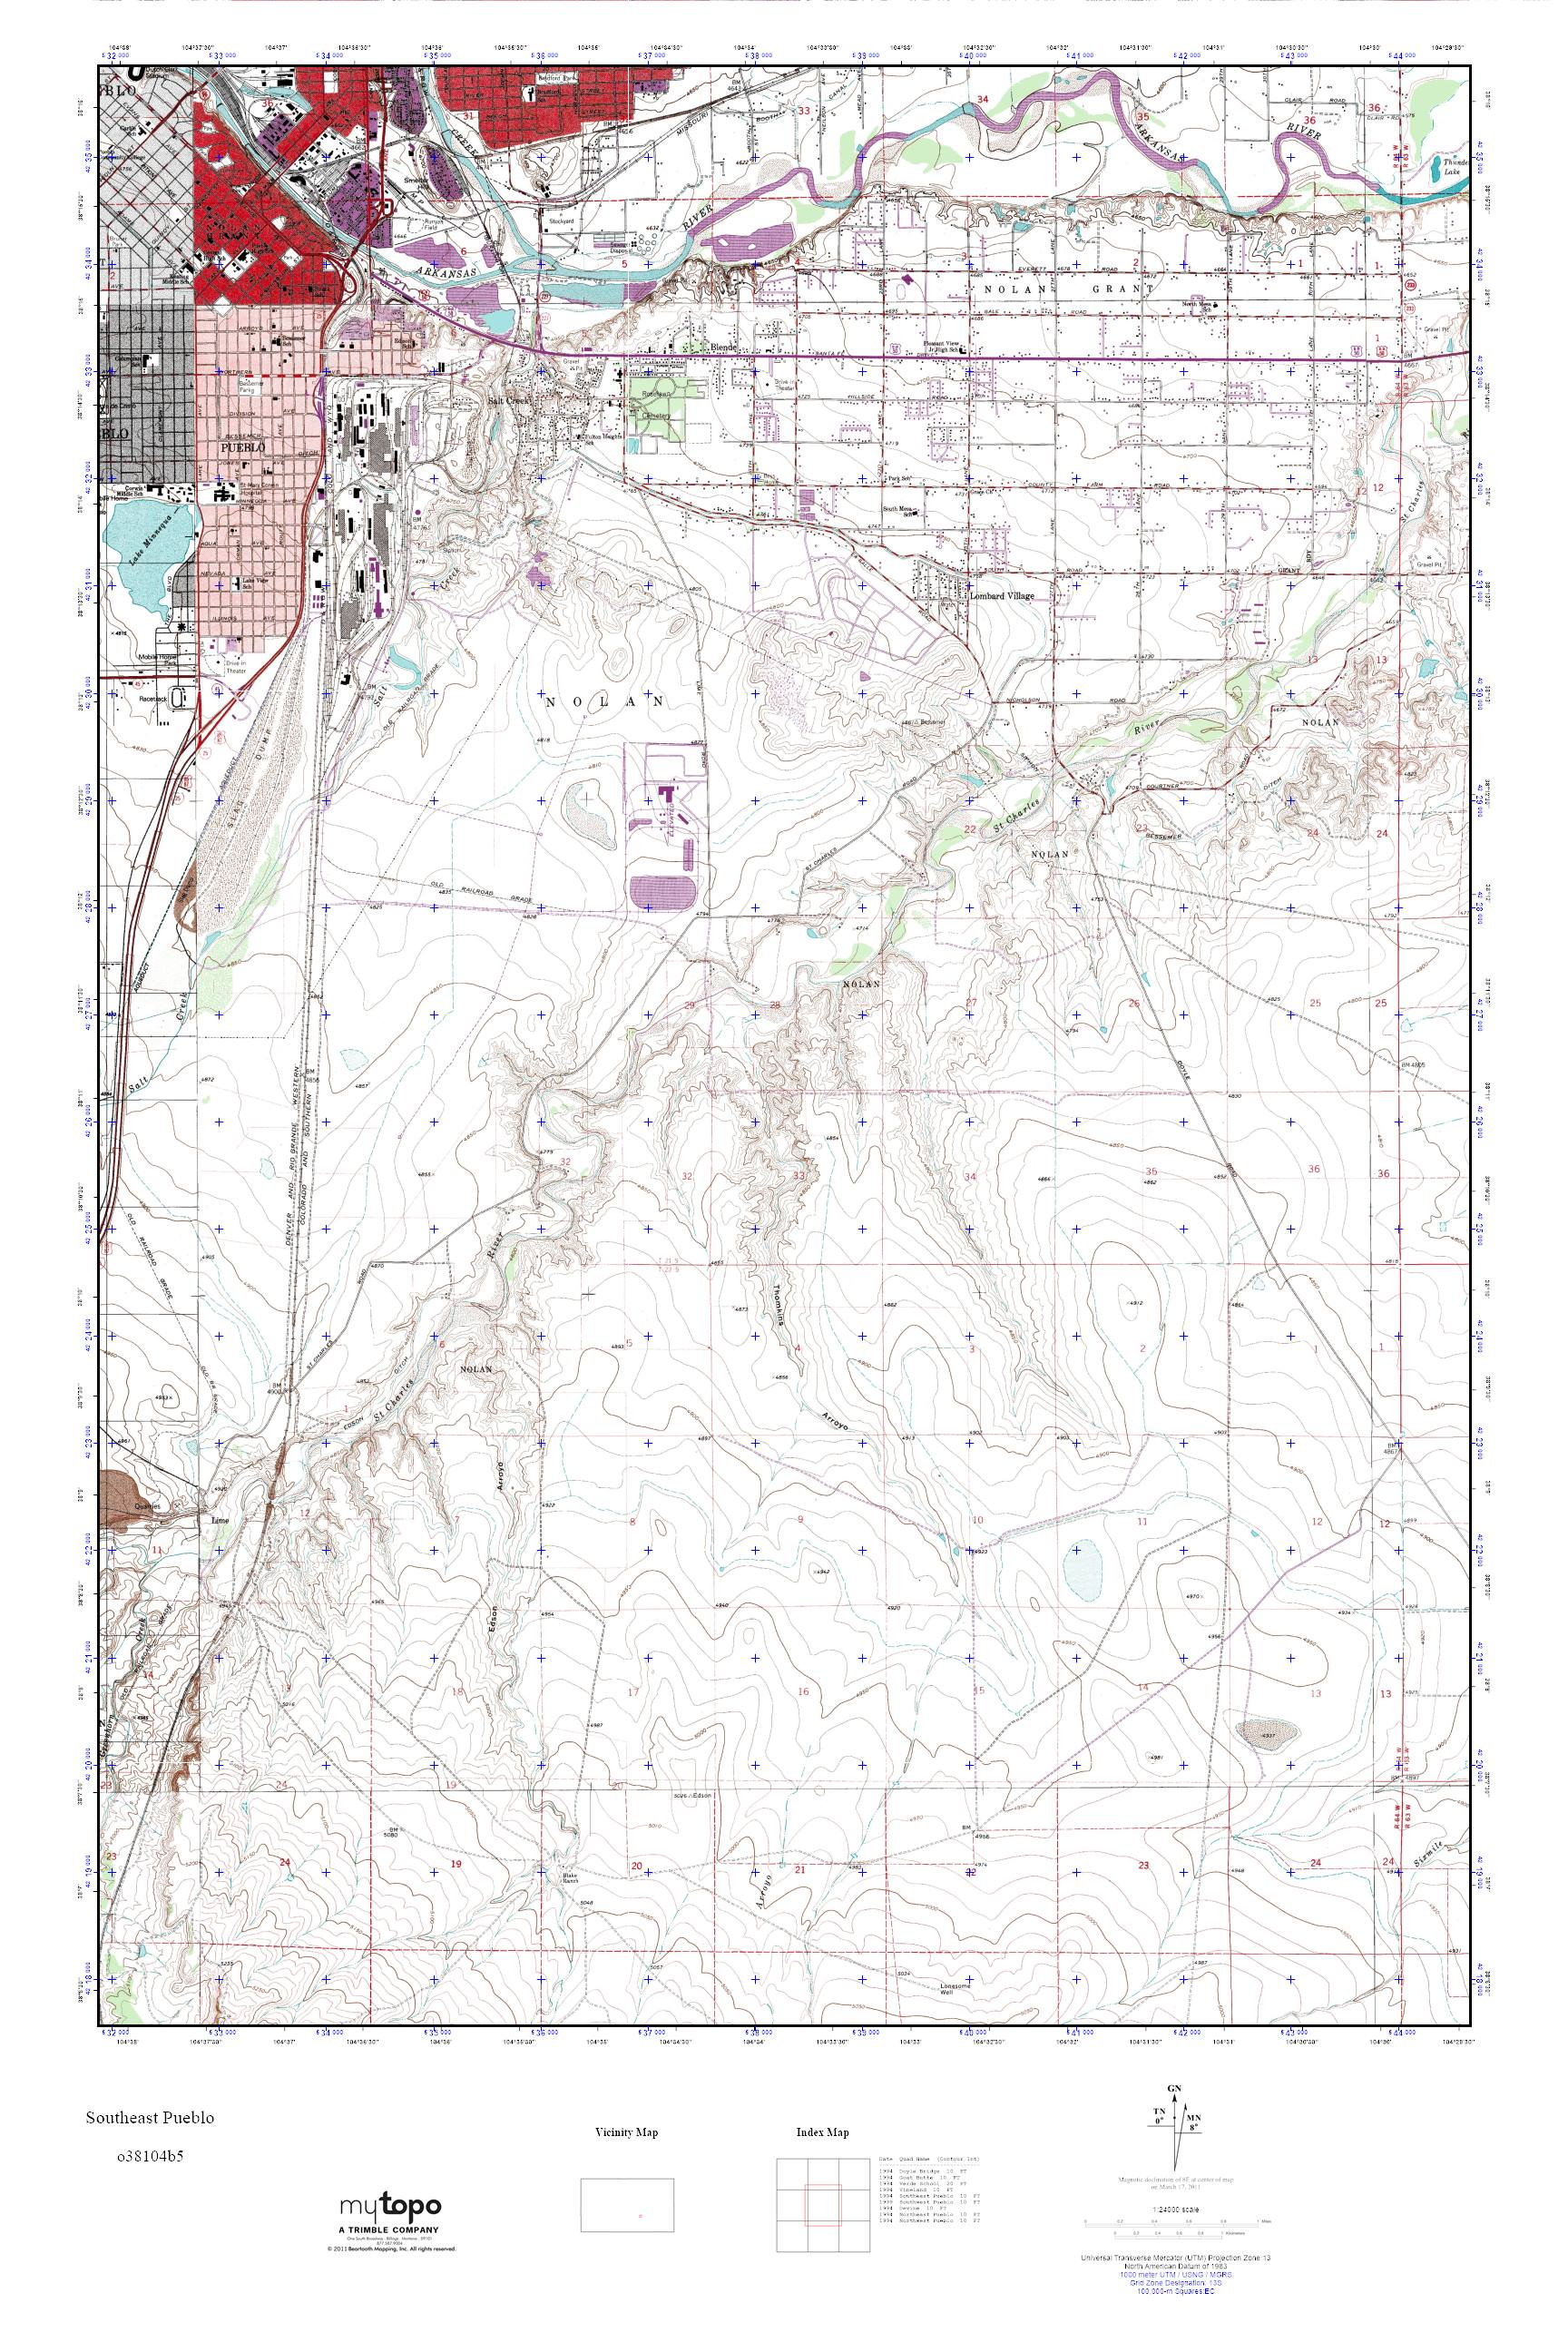 MyTopo Southeast Pueblo, Colorado USGS Quad Topo Map